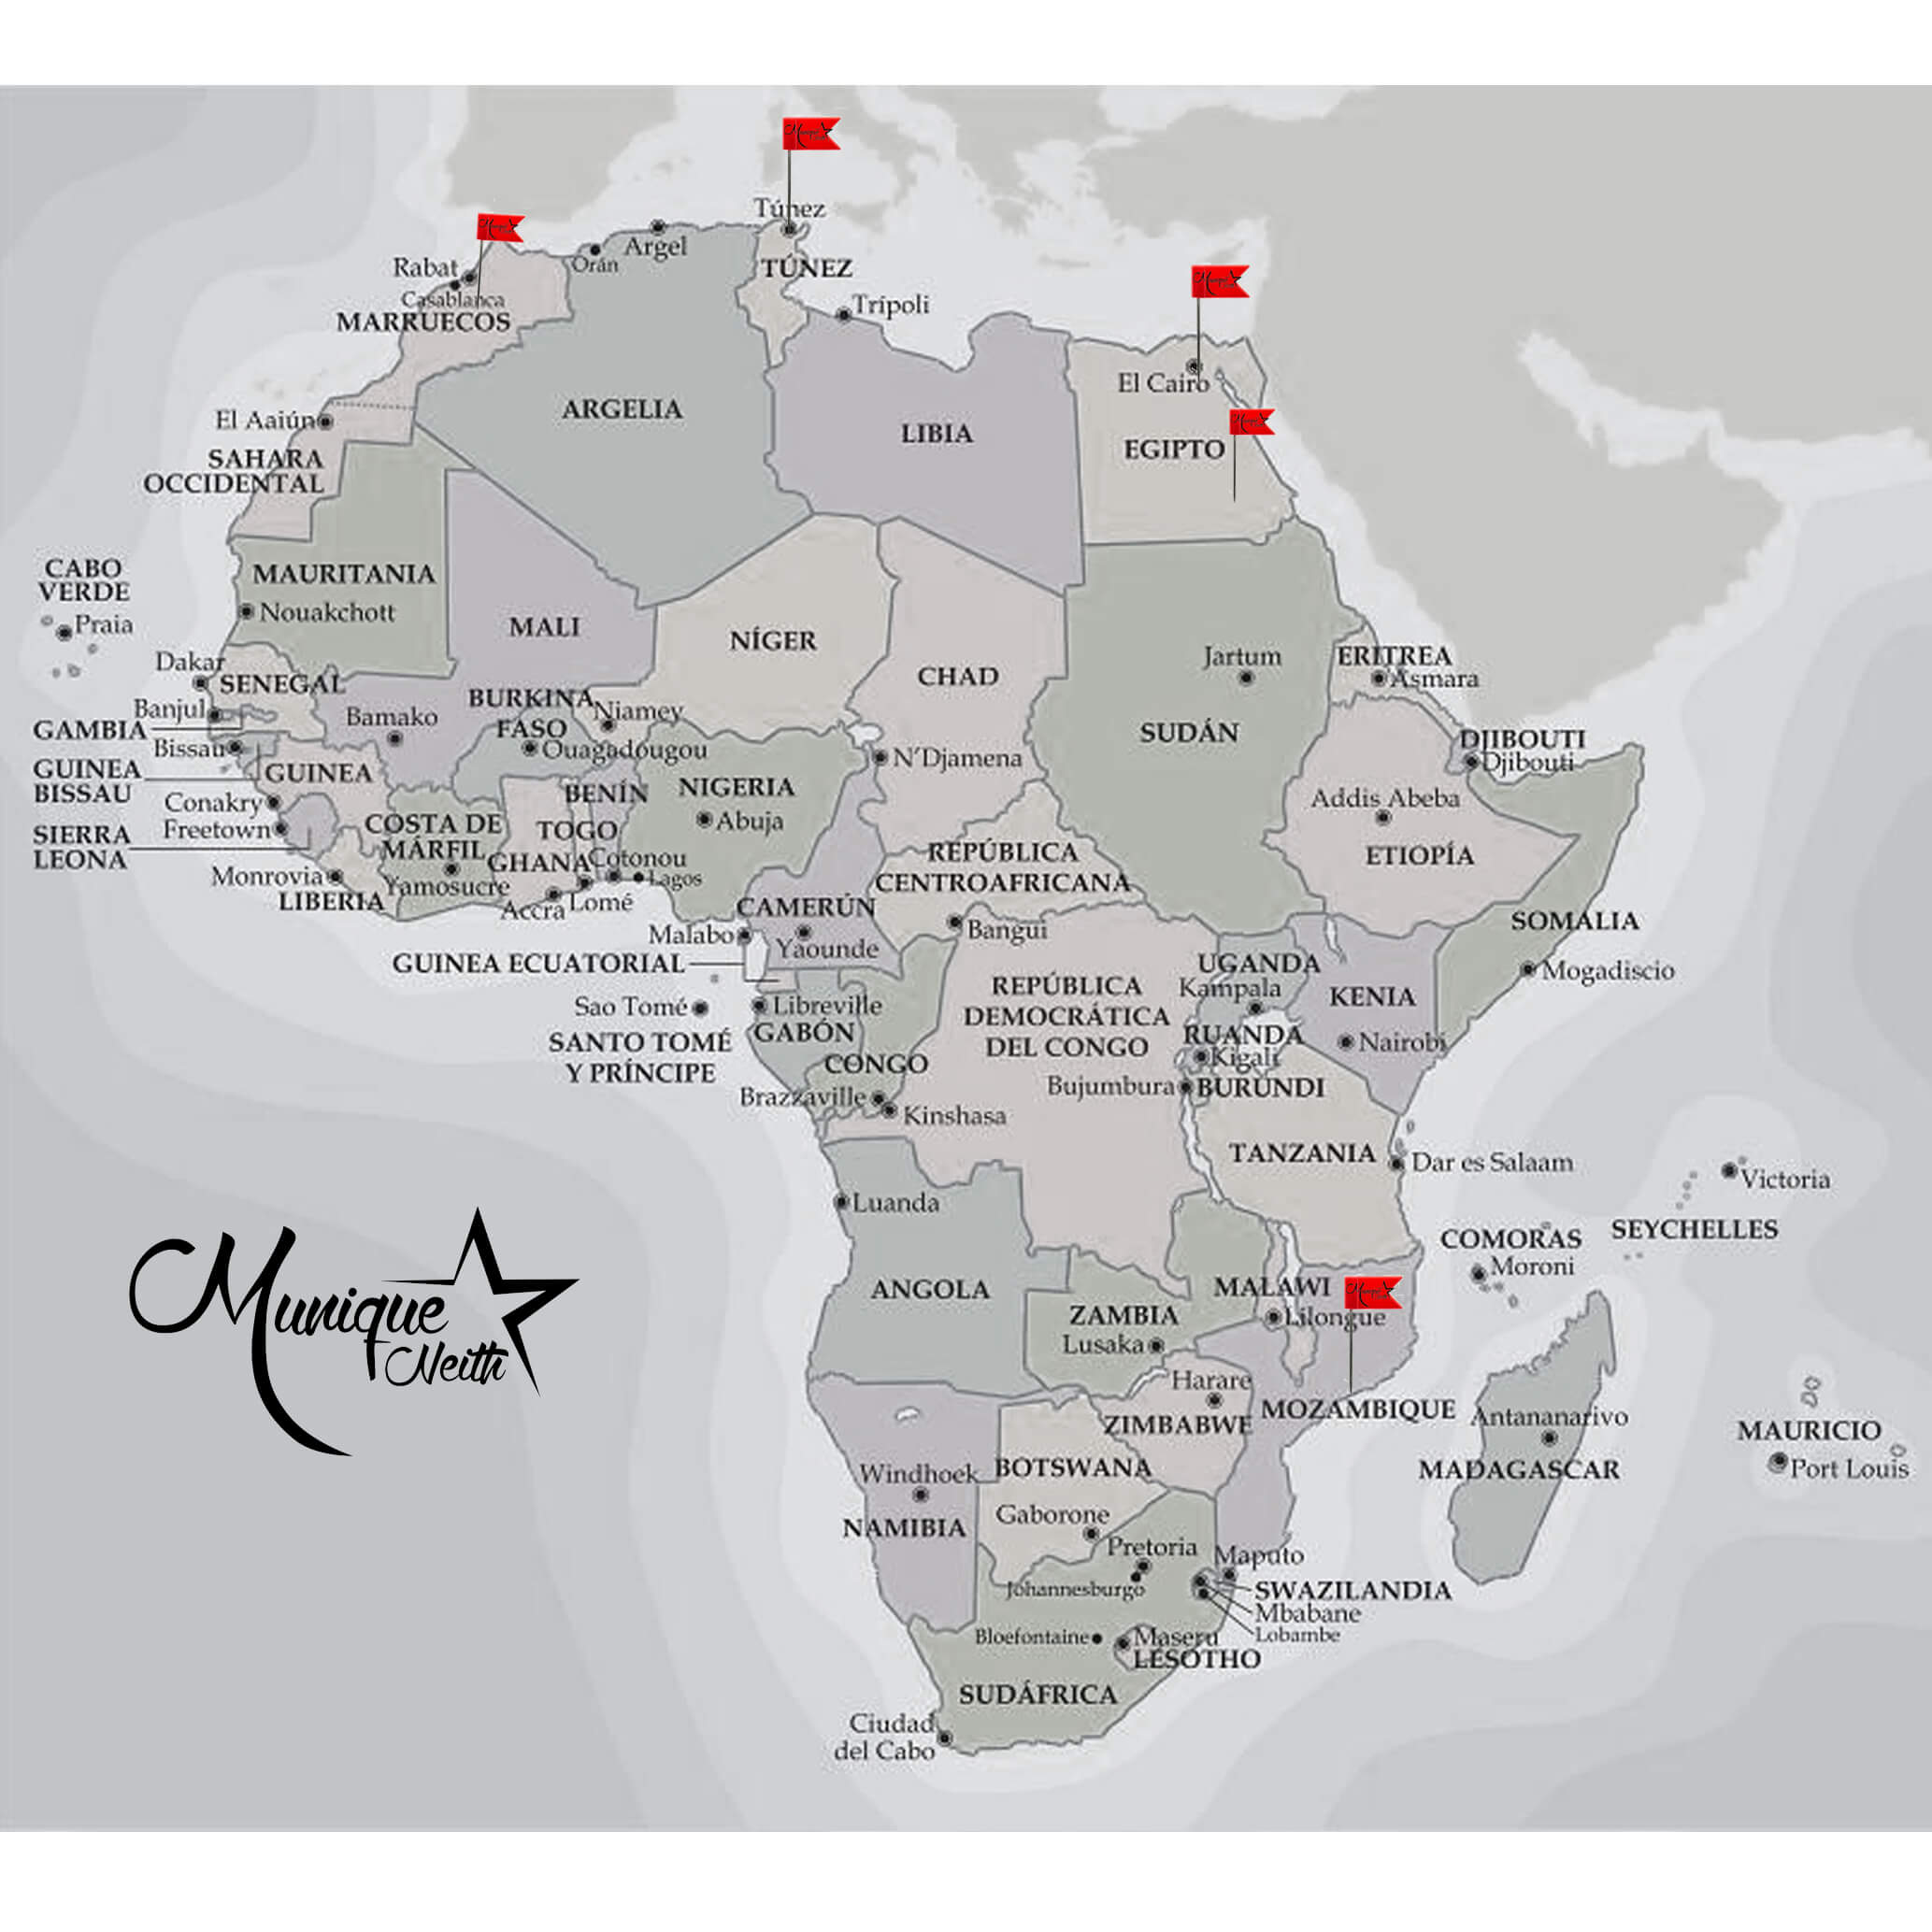 Munique Neith - Africa